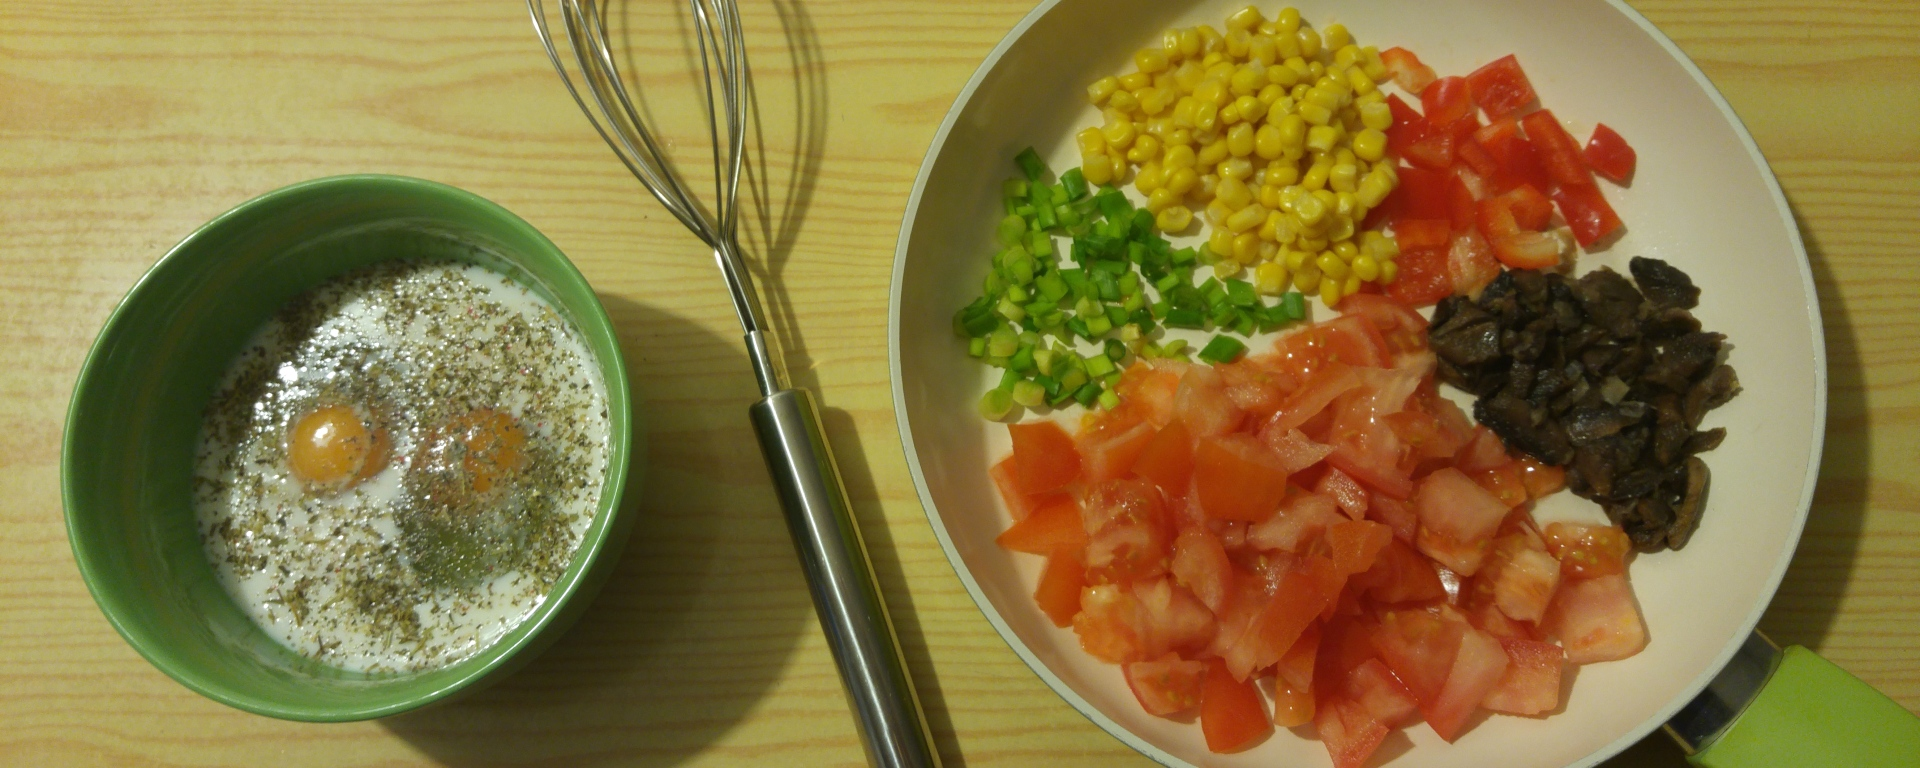 Ingredients for the vegetable omelette - eggs in a bowl and chopped up vegetables on a frying pan